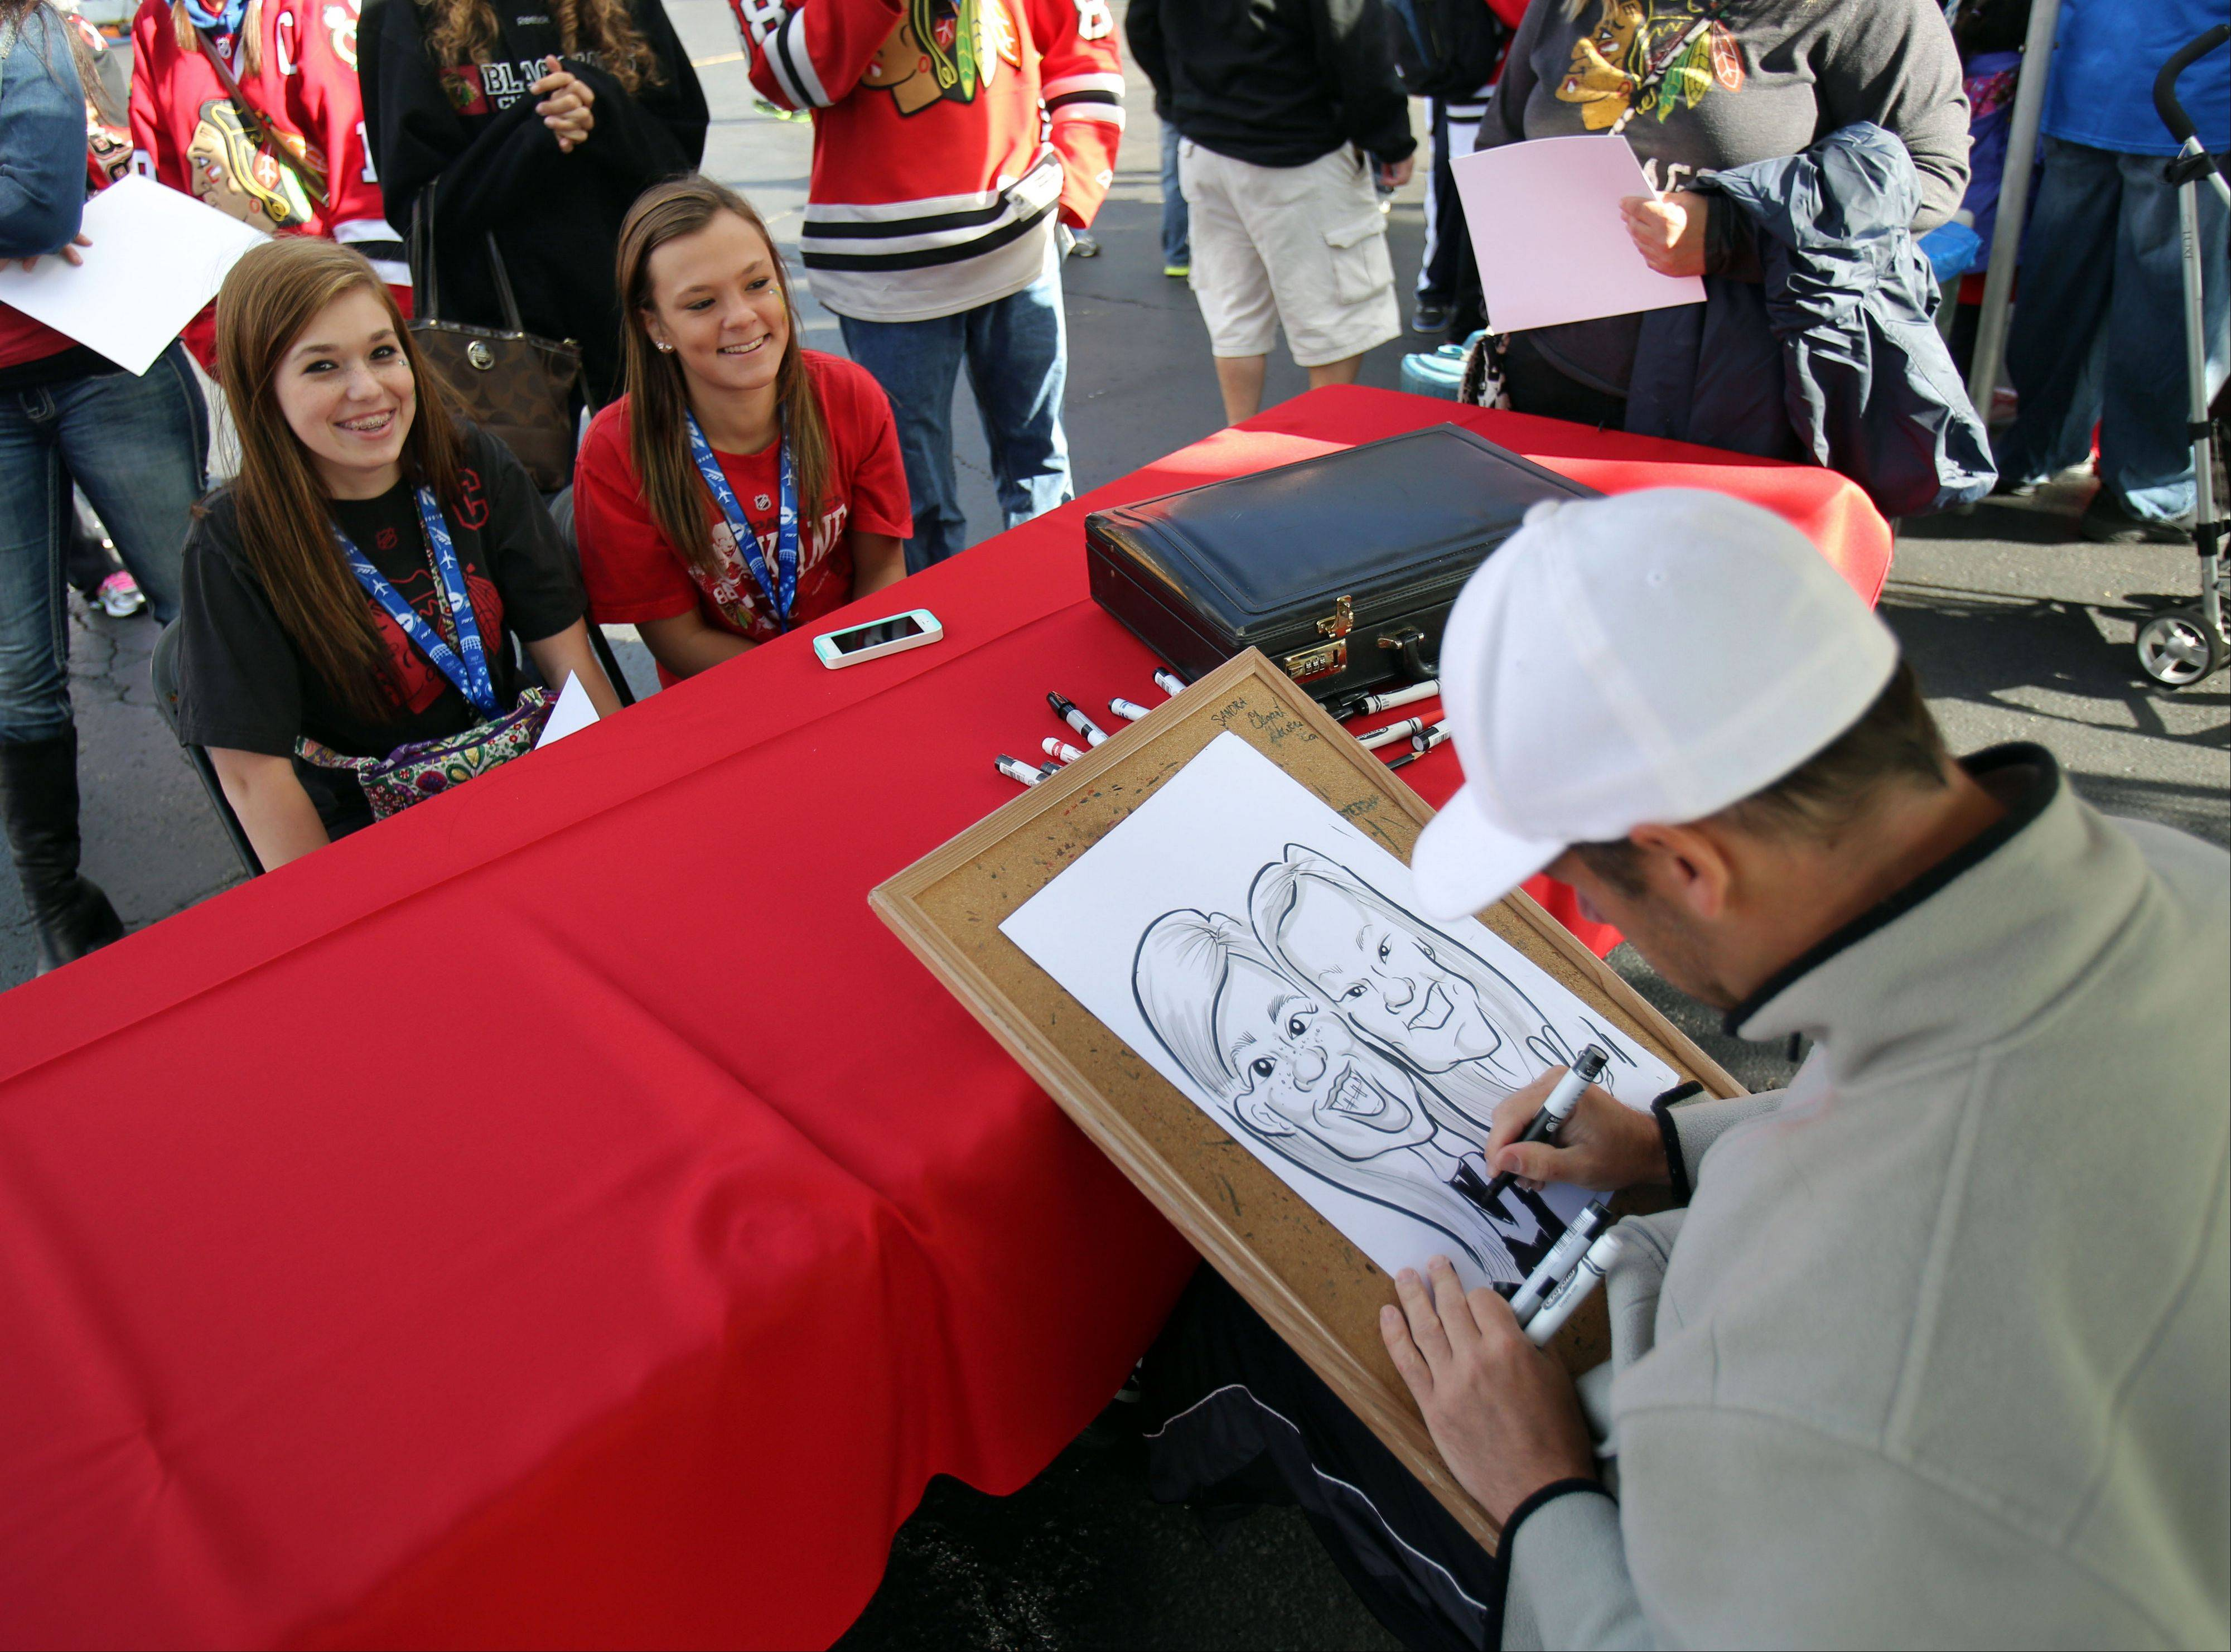 Alyssa Bennardo, left, and Emily Koster, both 16 from Algonquin, get their portrait drawn by artist Scott Nychay.